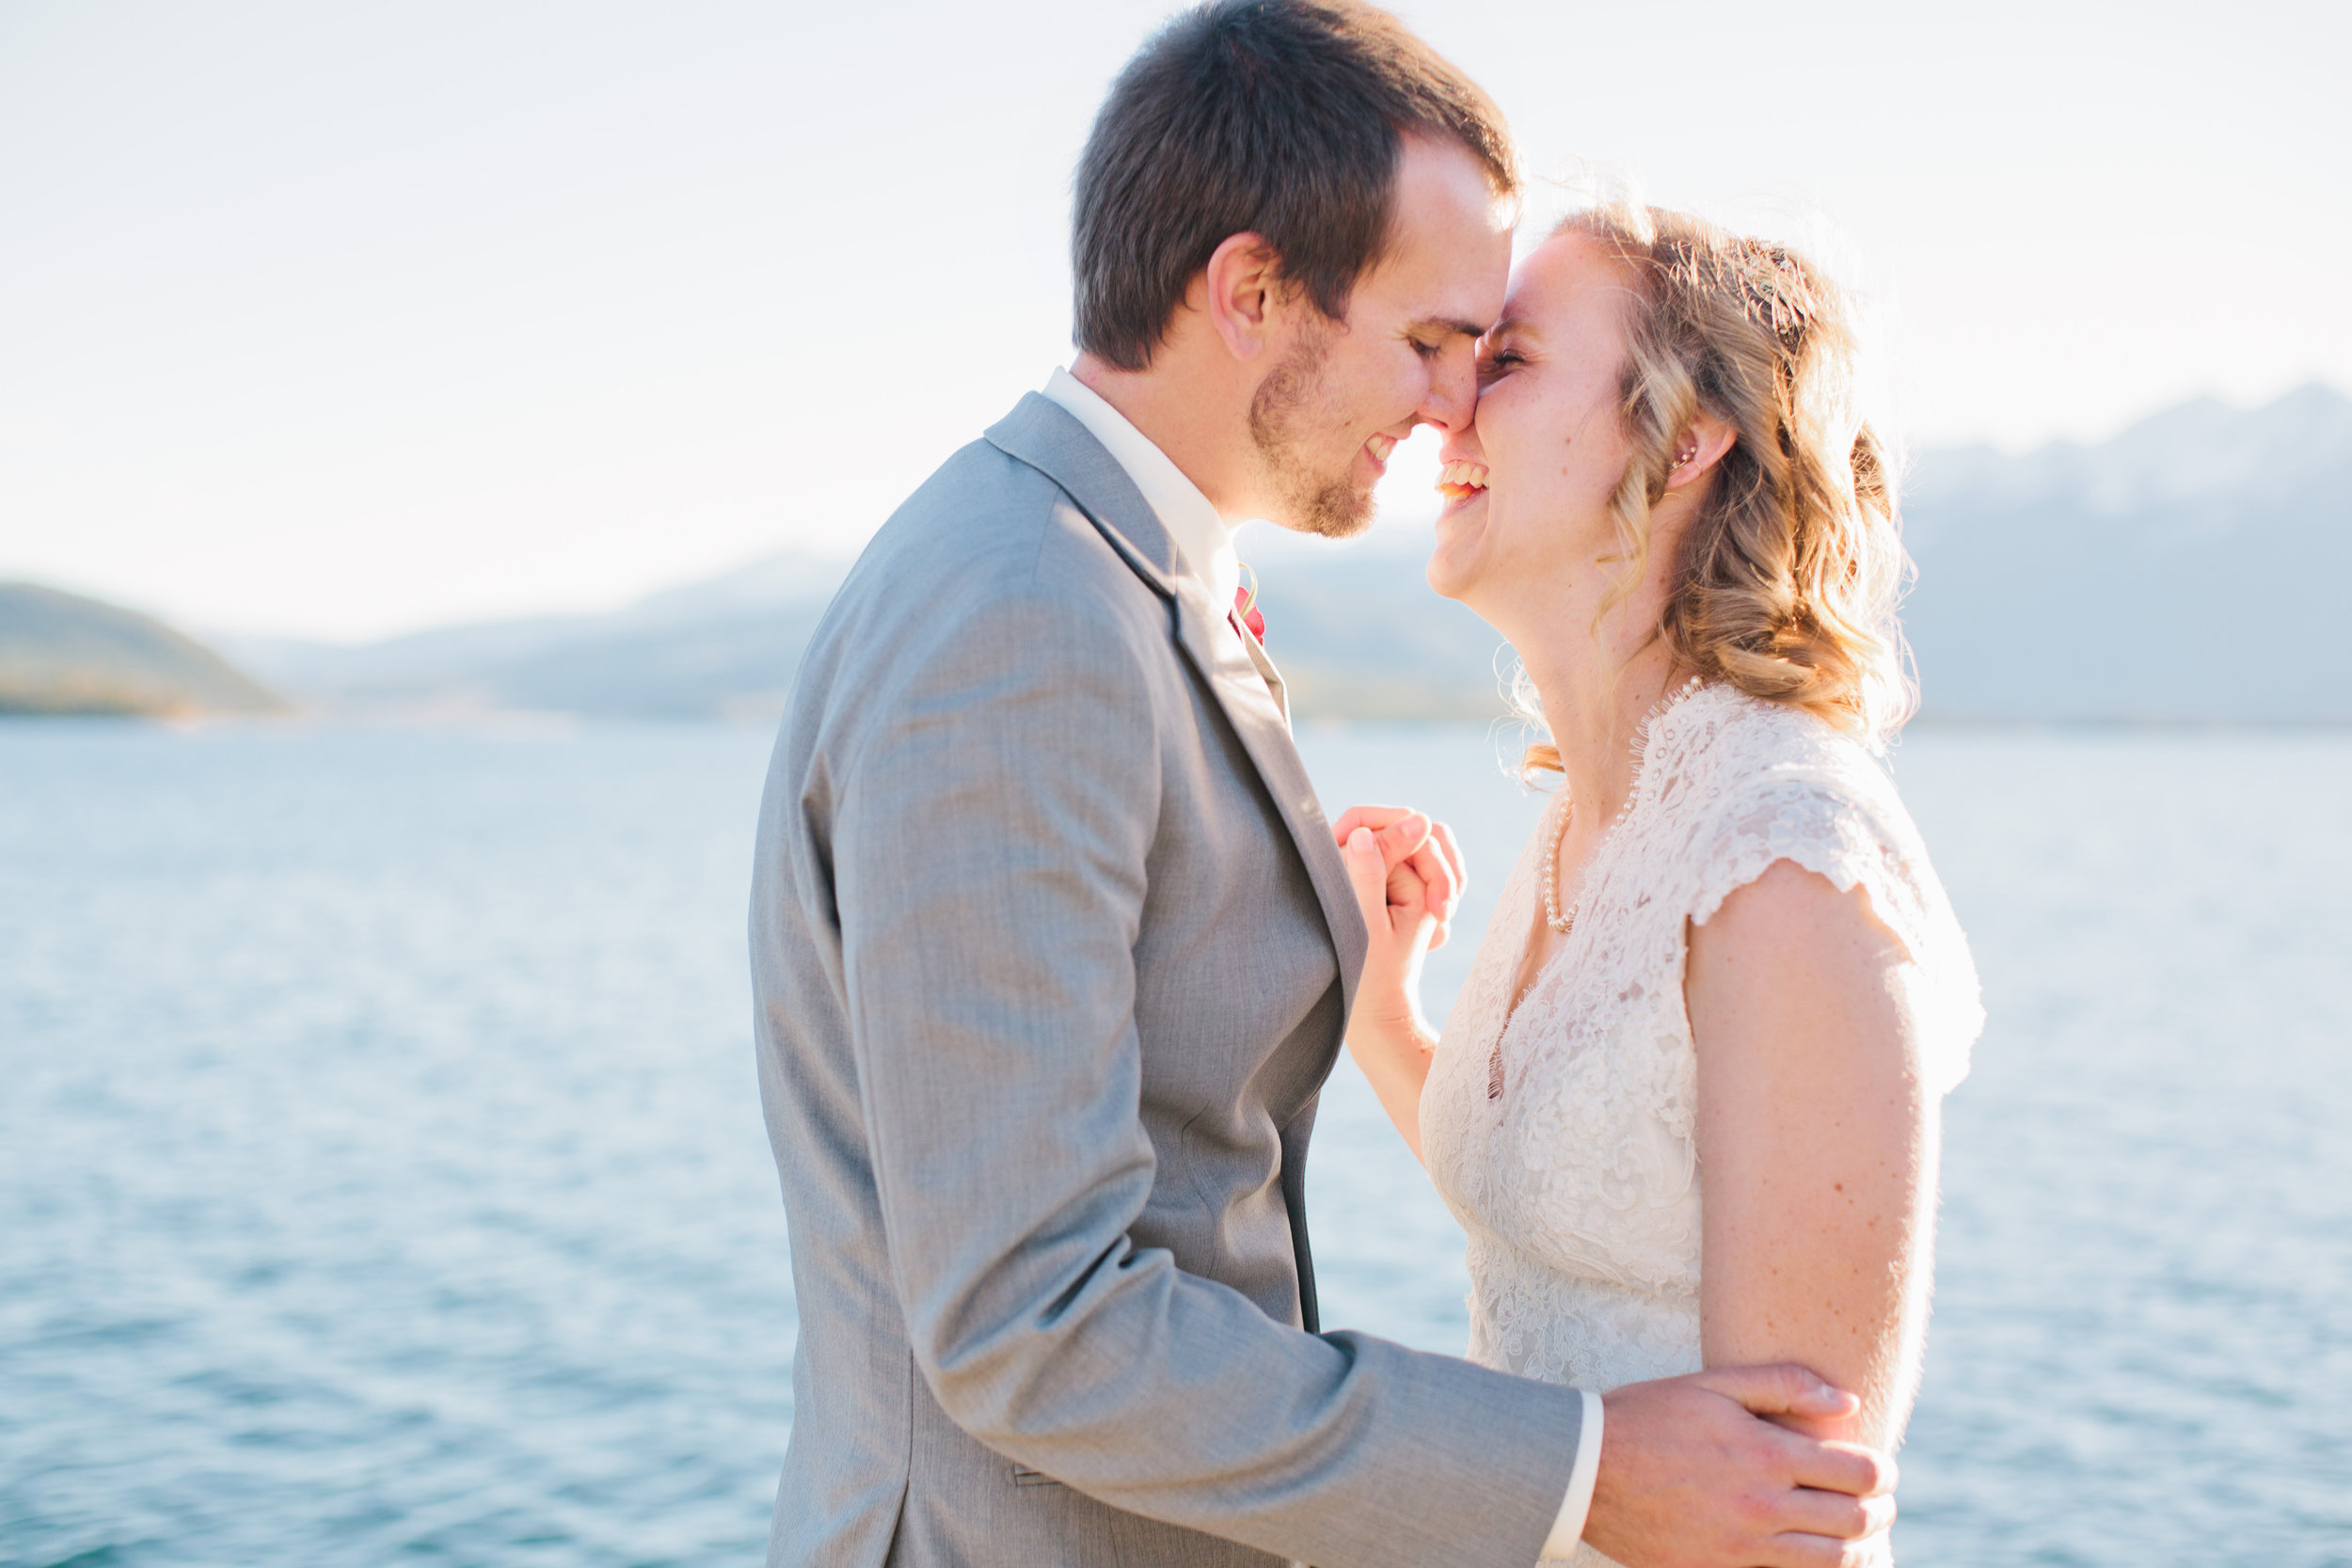 Hawaii wedding photographers and venues for 2018 2019 brides